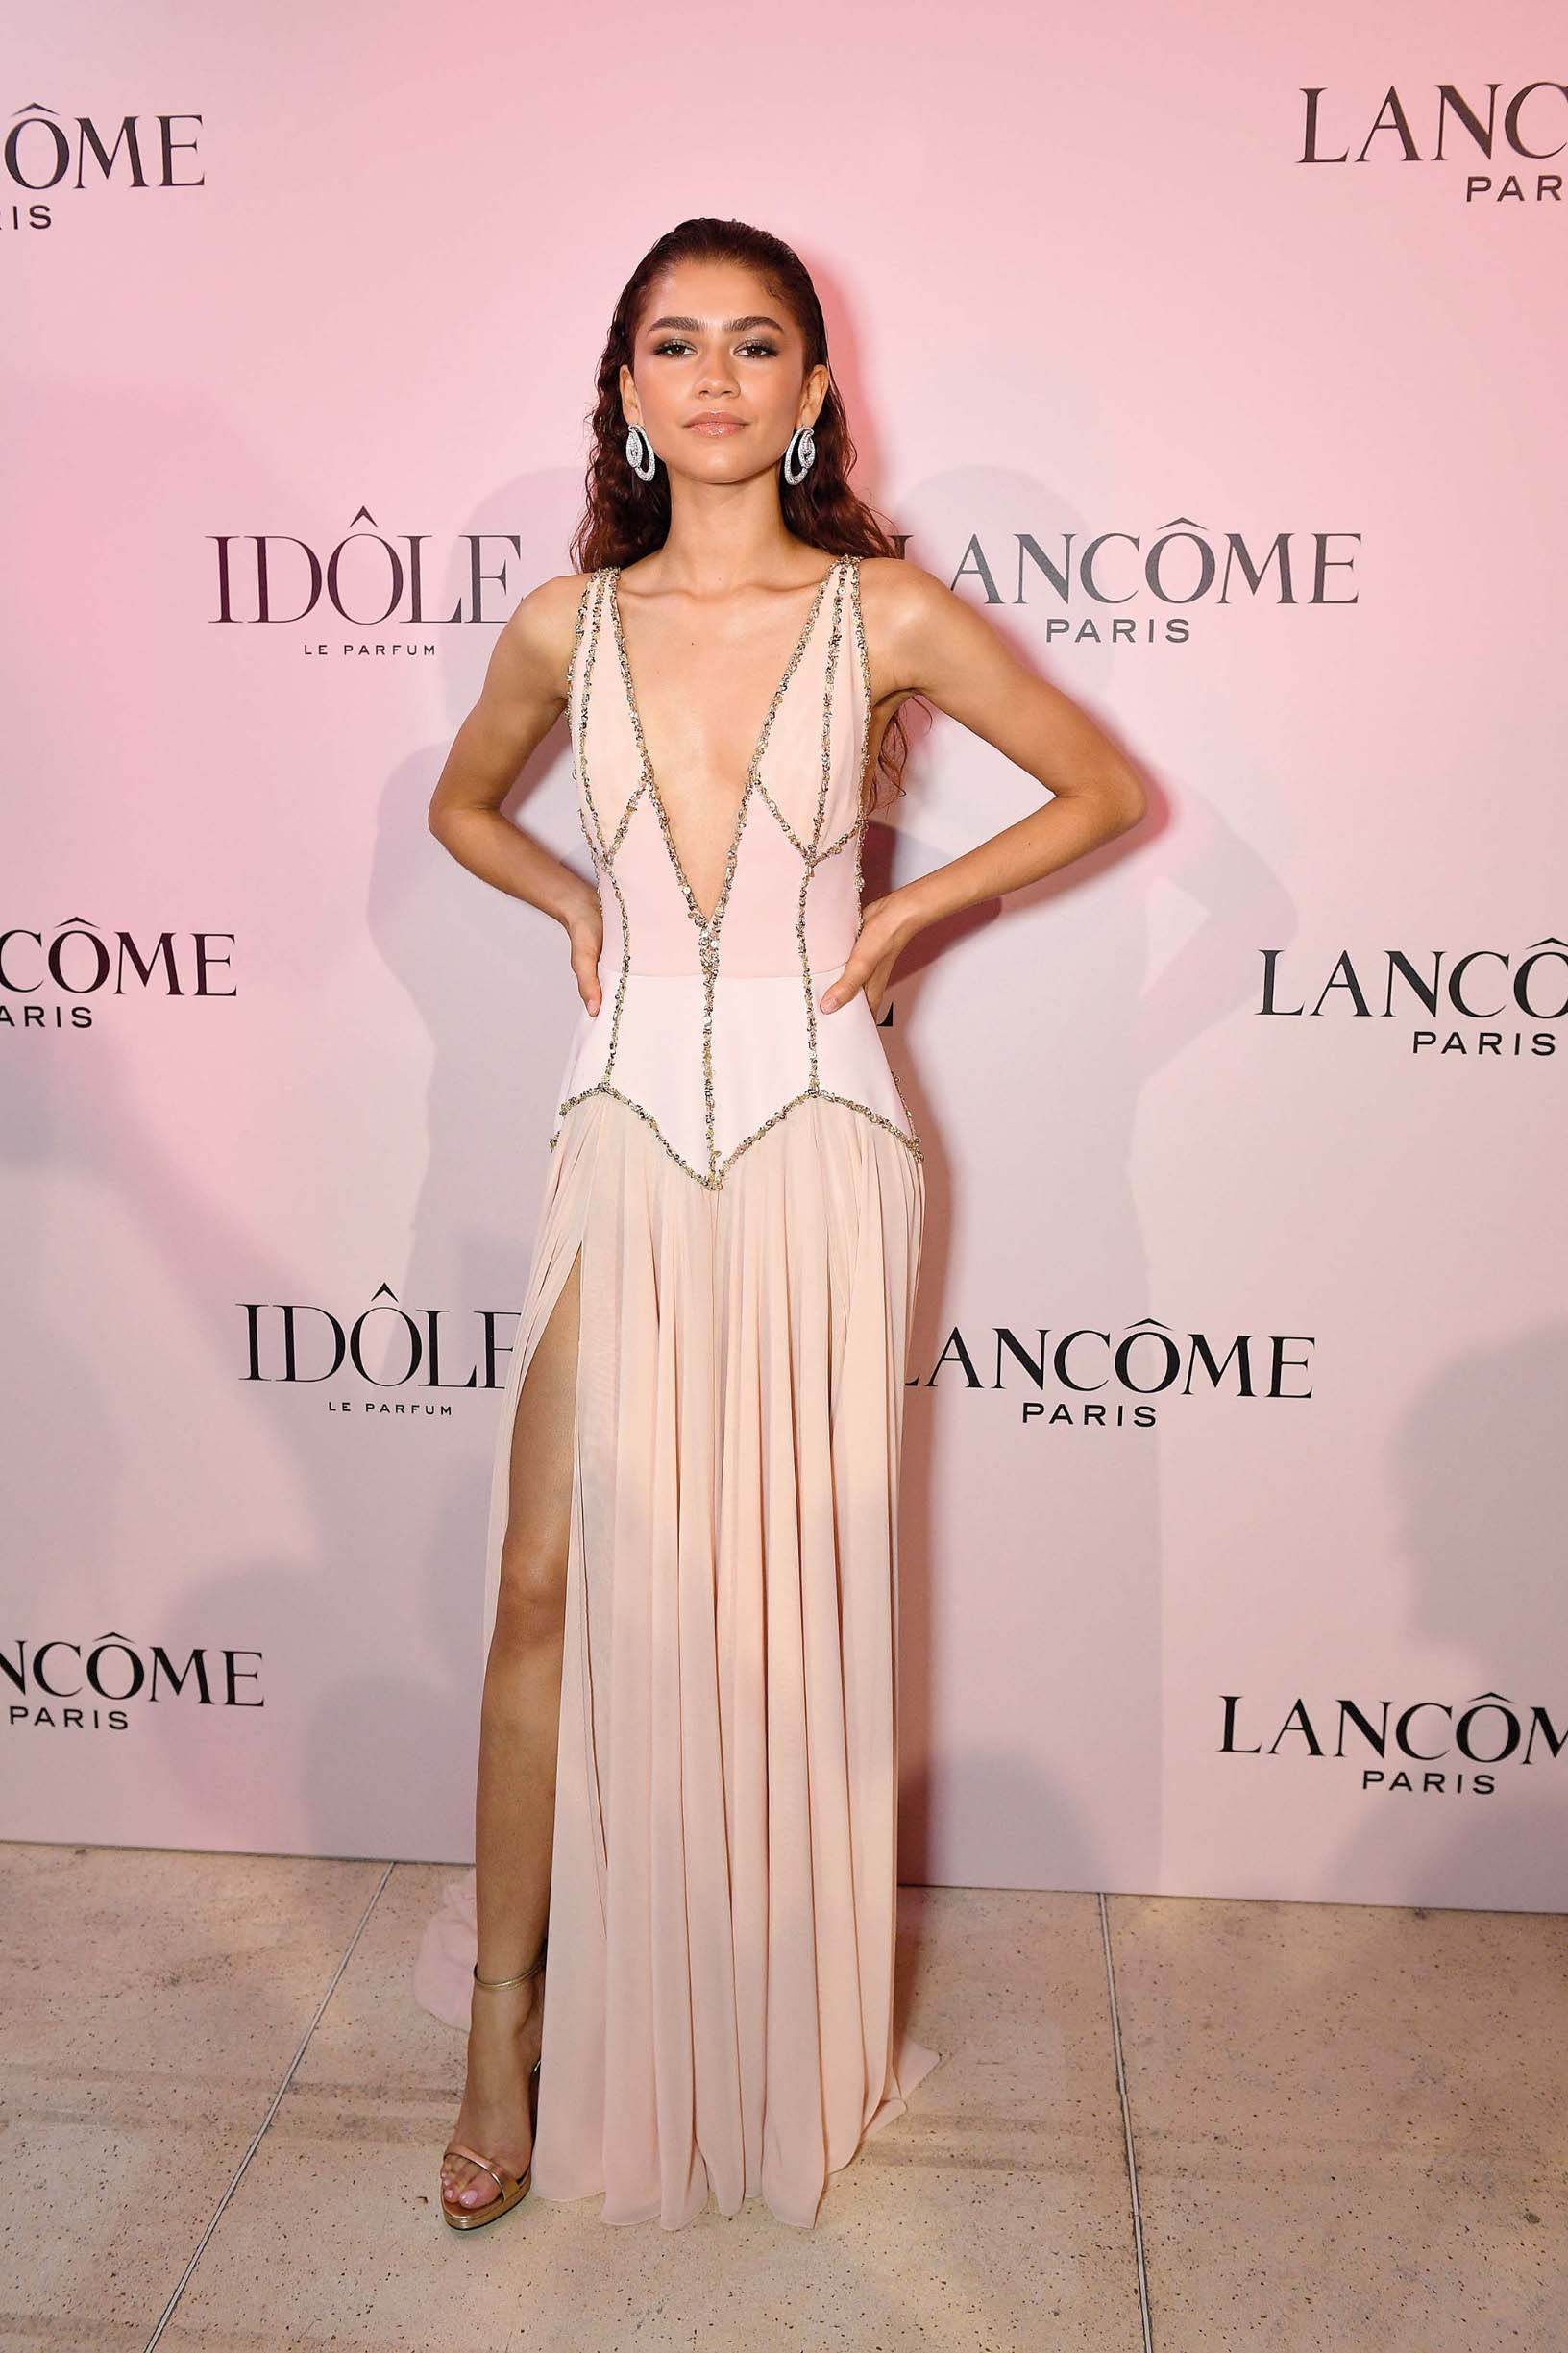 PARIS, FRANCE - JULY 02: Zendaya, the face of the Lancôme Idôle fragrance, attends the launch at Palais D'Iena on July 02, 2019 in Paris, France. (Photo by Kristy Sparow/Getty Images for Lancome,)